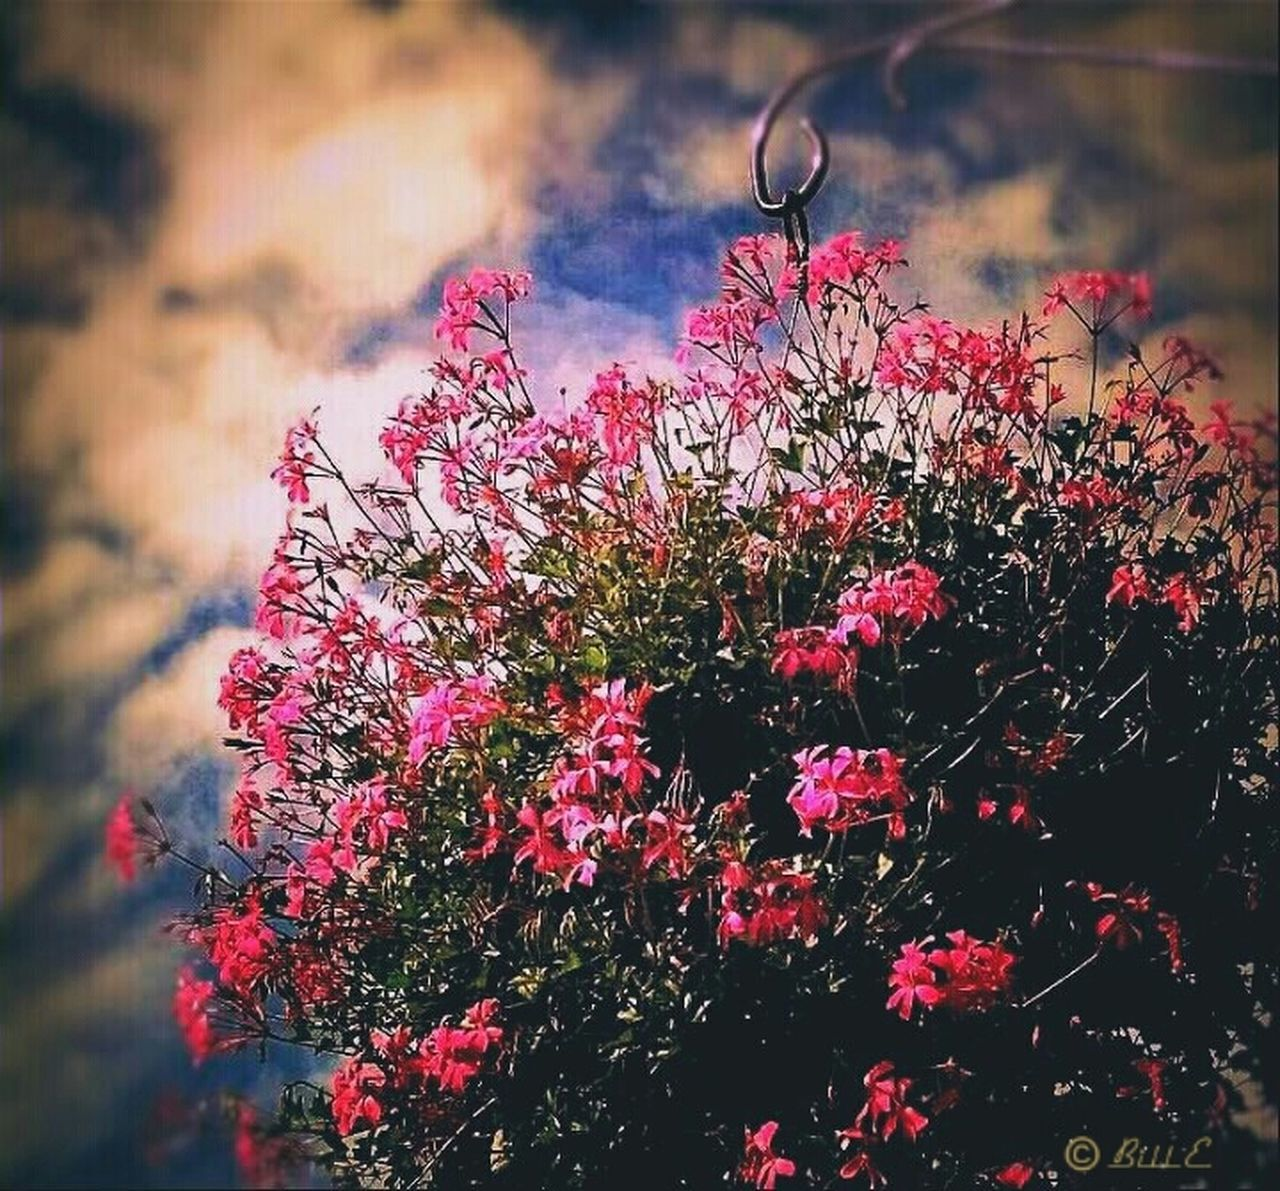 flower, growth, nature, plant, no people, pink color, outdoors, fragility, beauty in nature, red, flower head, day, freshness, sky, close-up